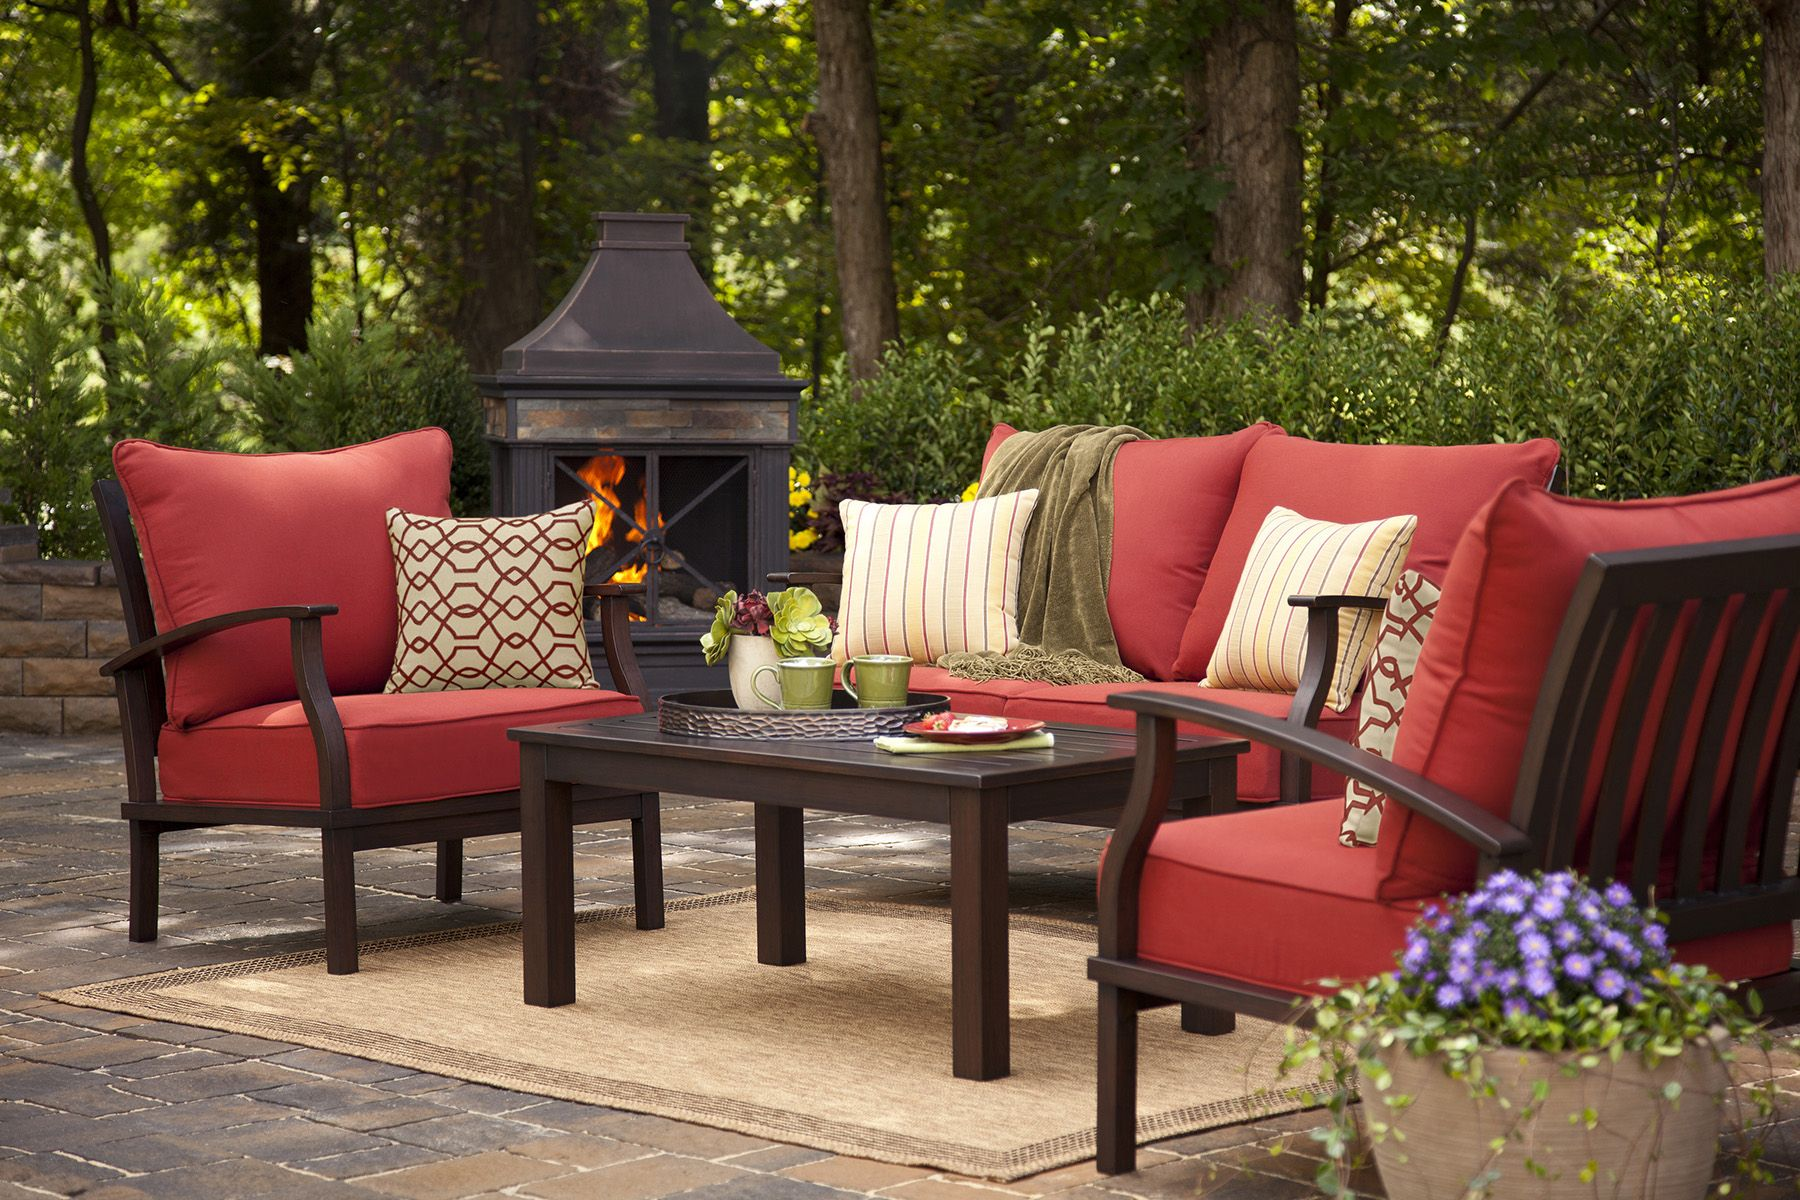 Bring Comfort And Style To Your Patio Lowes Patio Furniture Sunbrella Patio Furniture Patio Furniture Sets